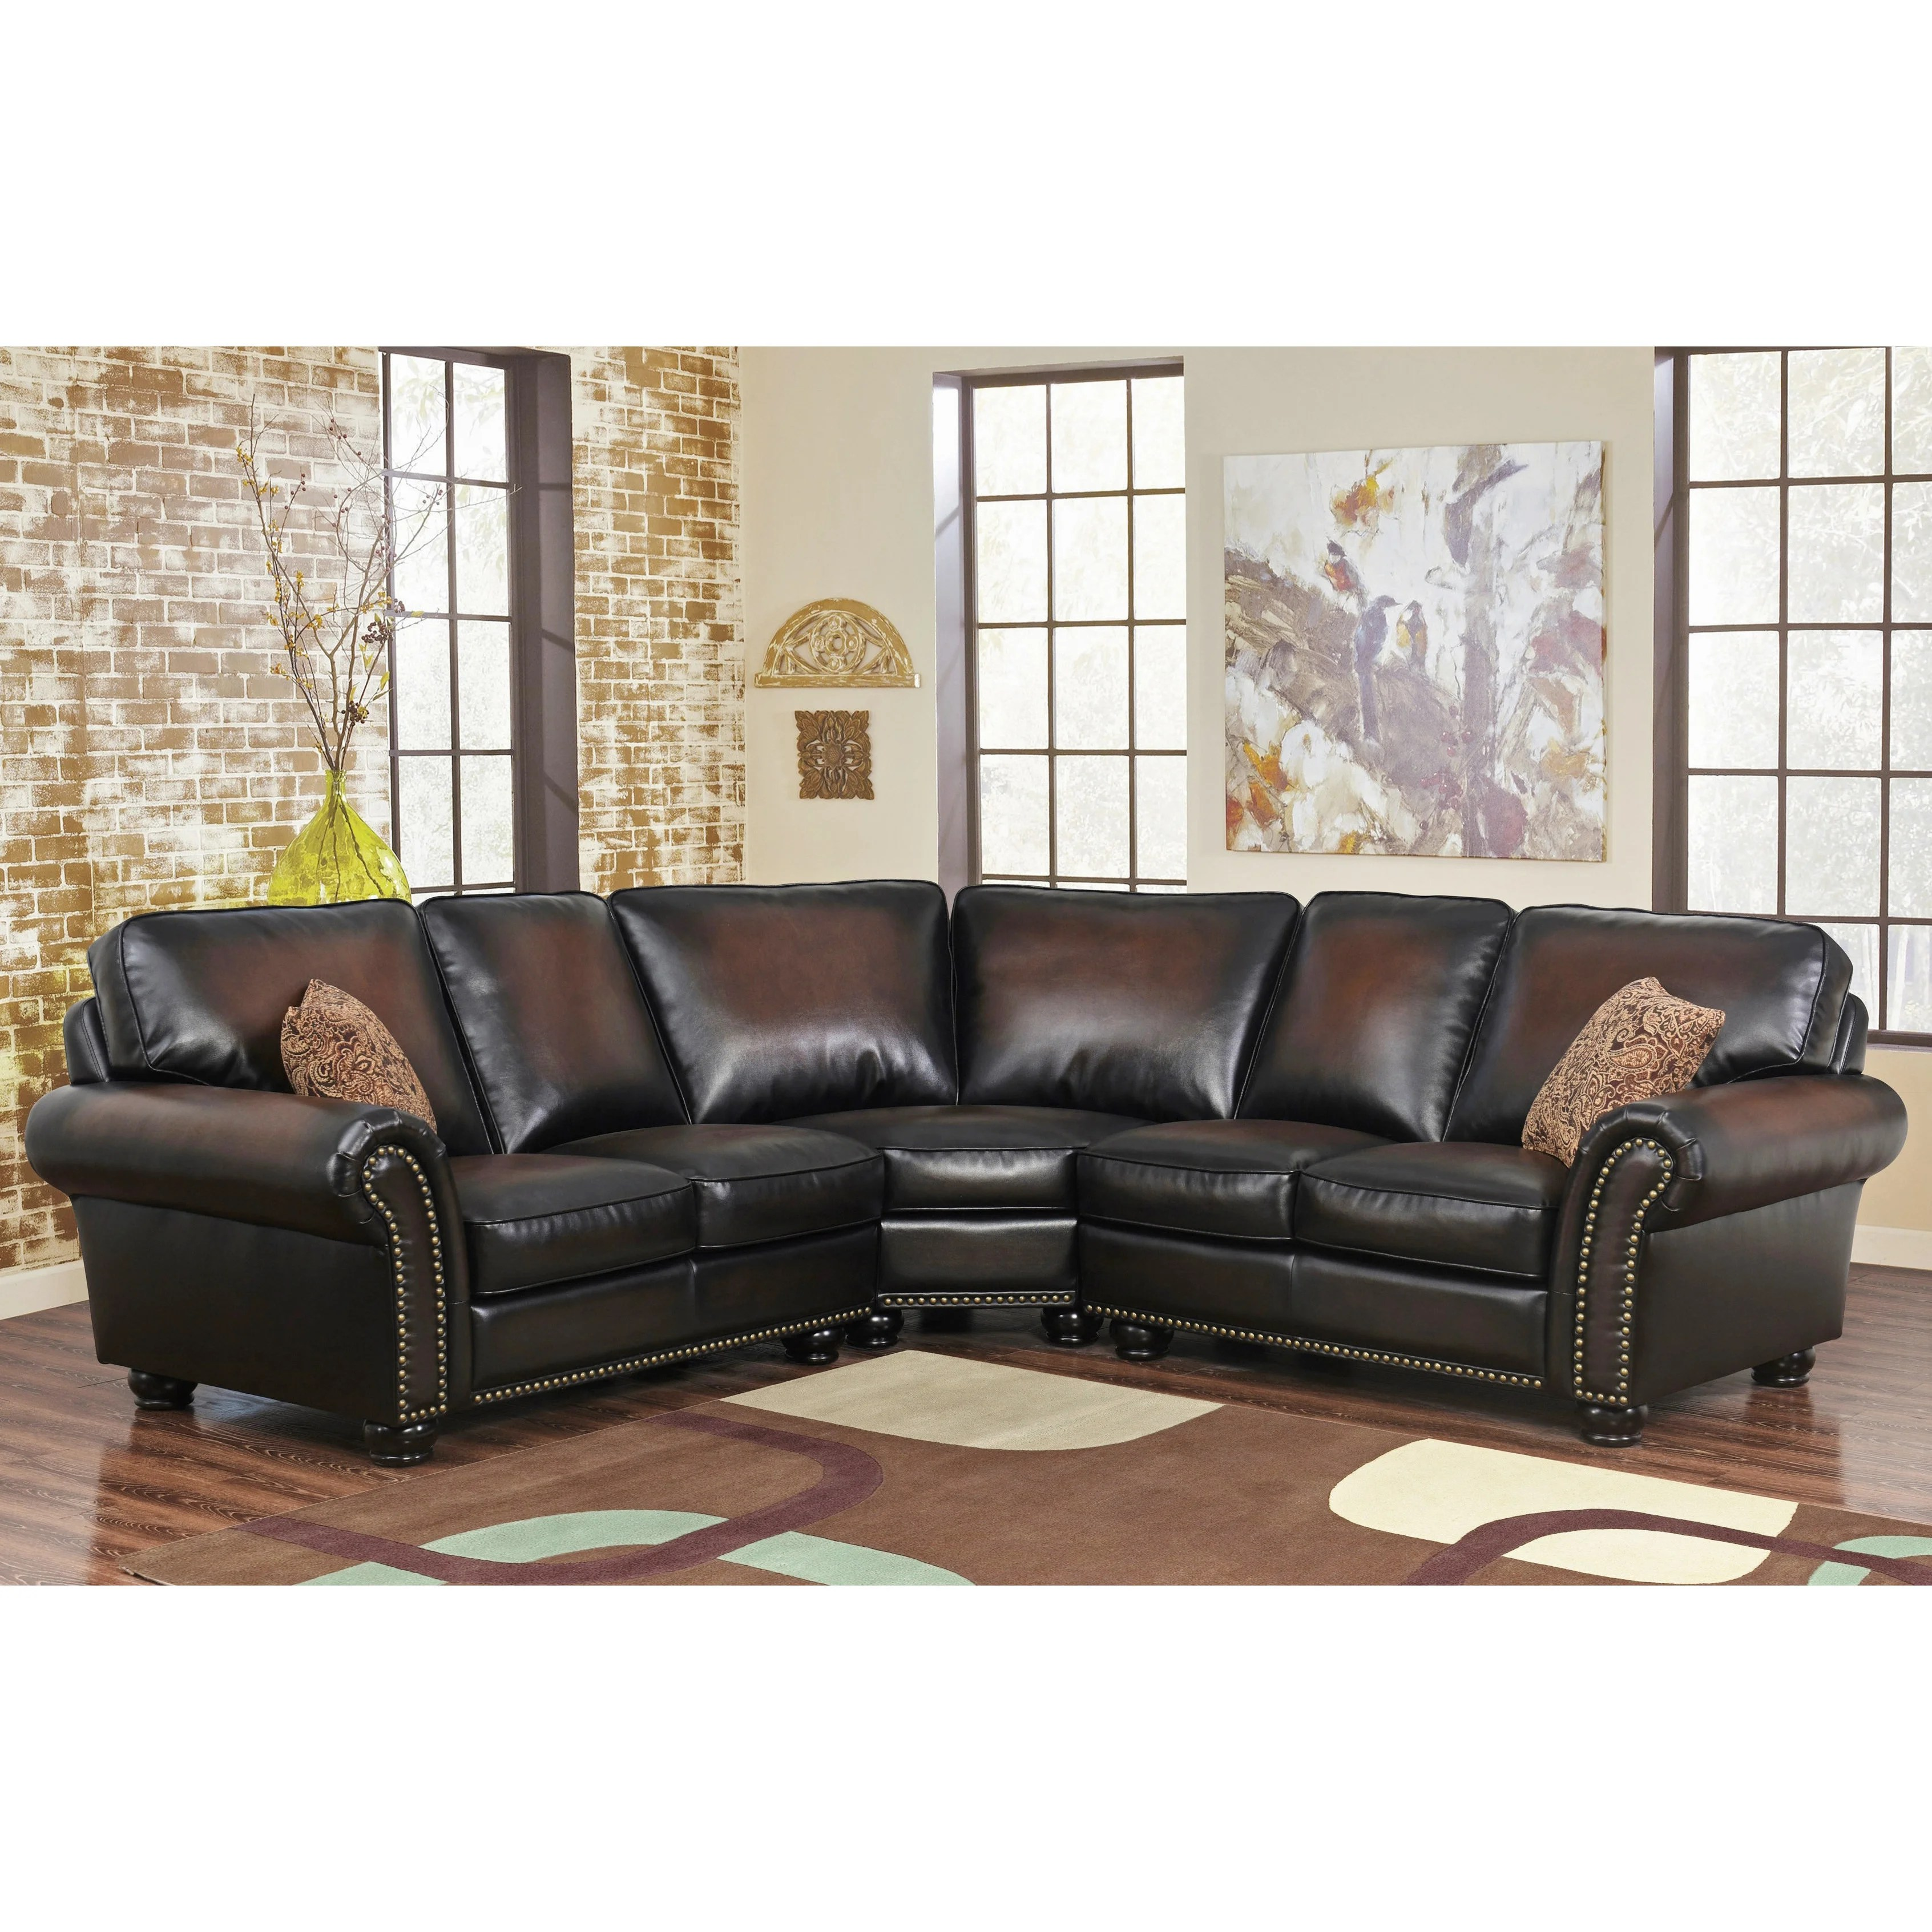 Leather Sectional Sofa Recliner Buy Leather Sectional Sofas Online At Overstock Our Best Living